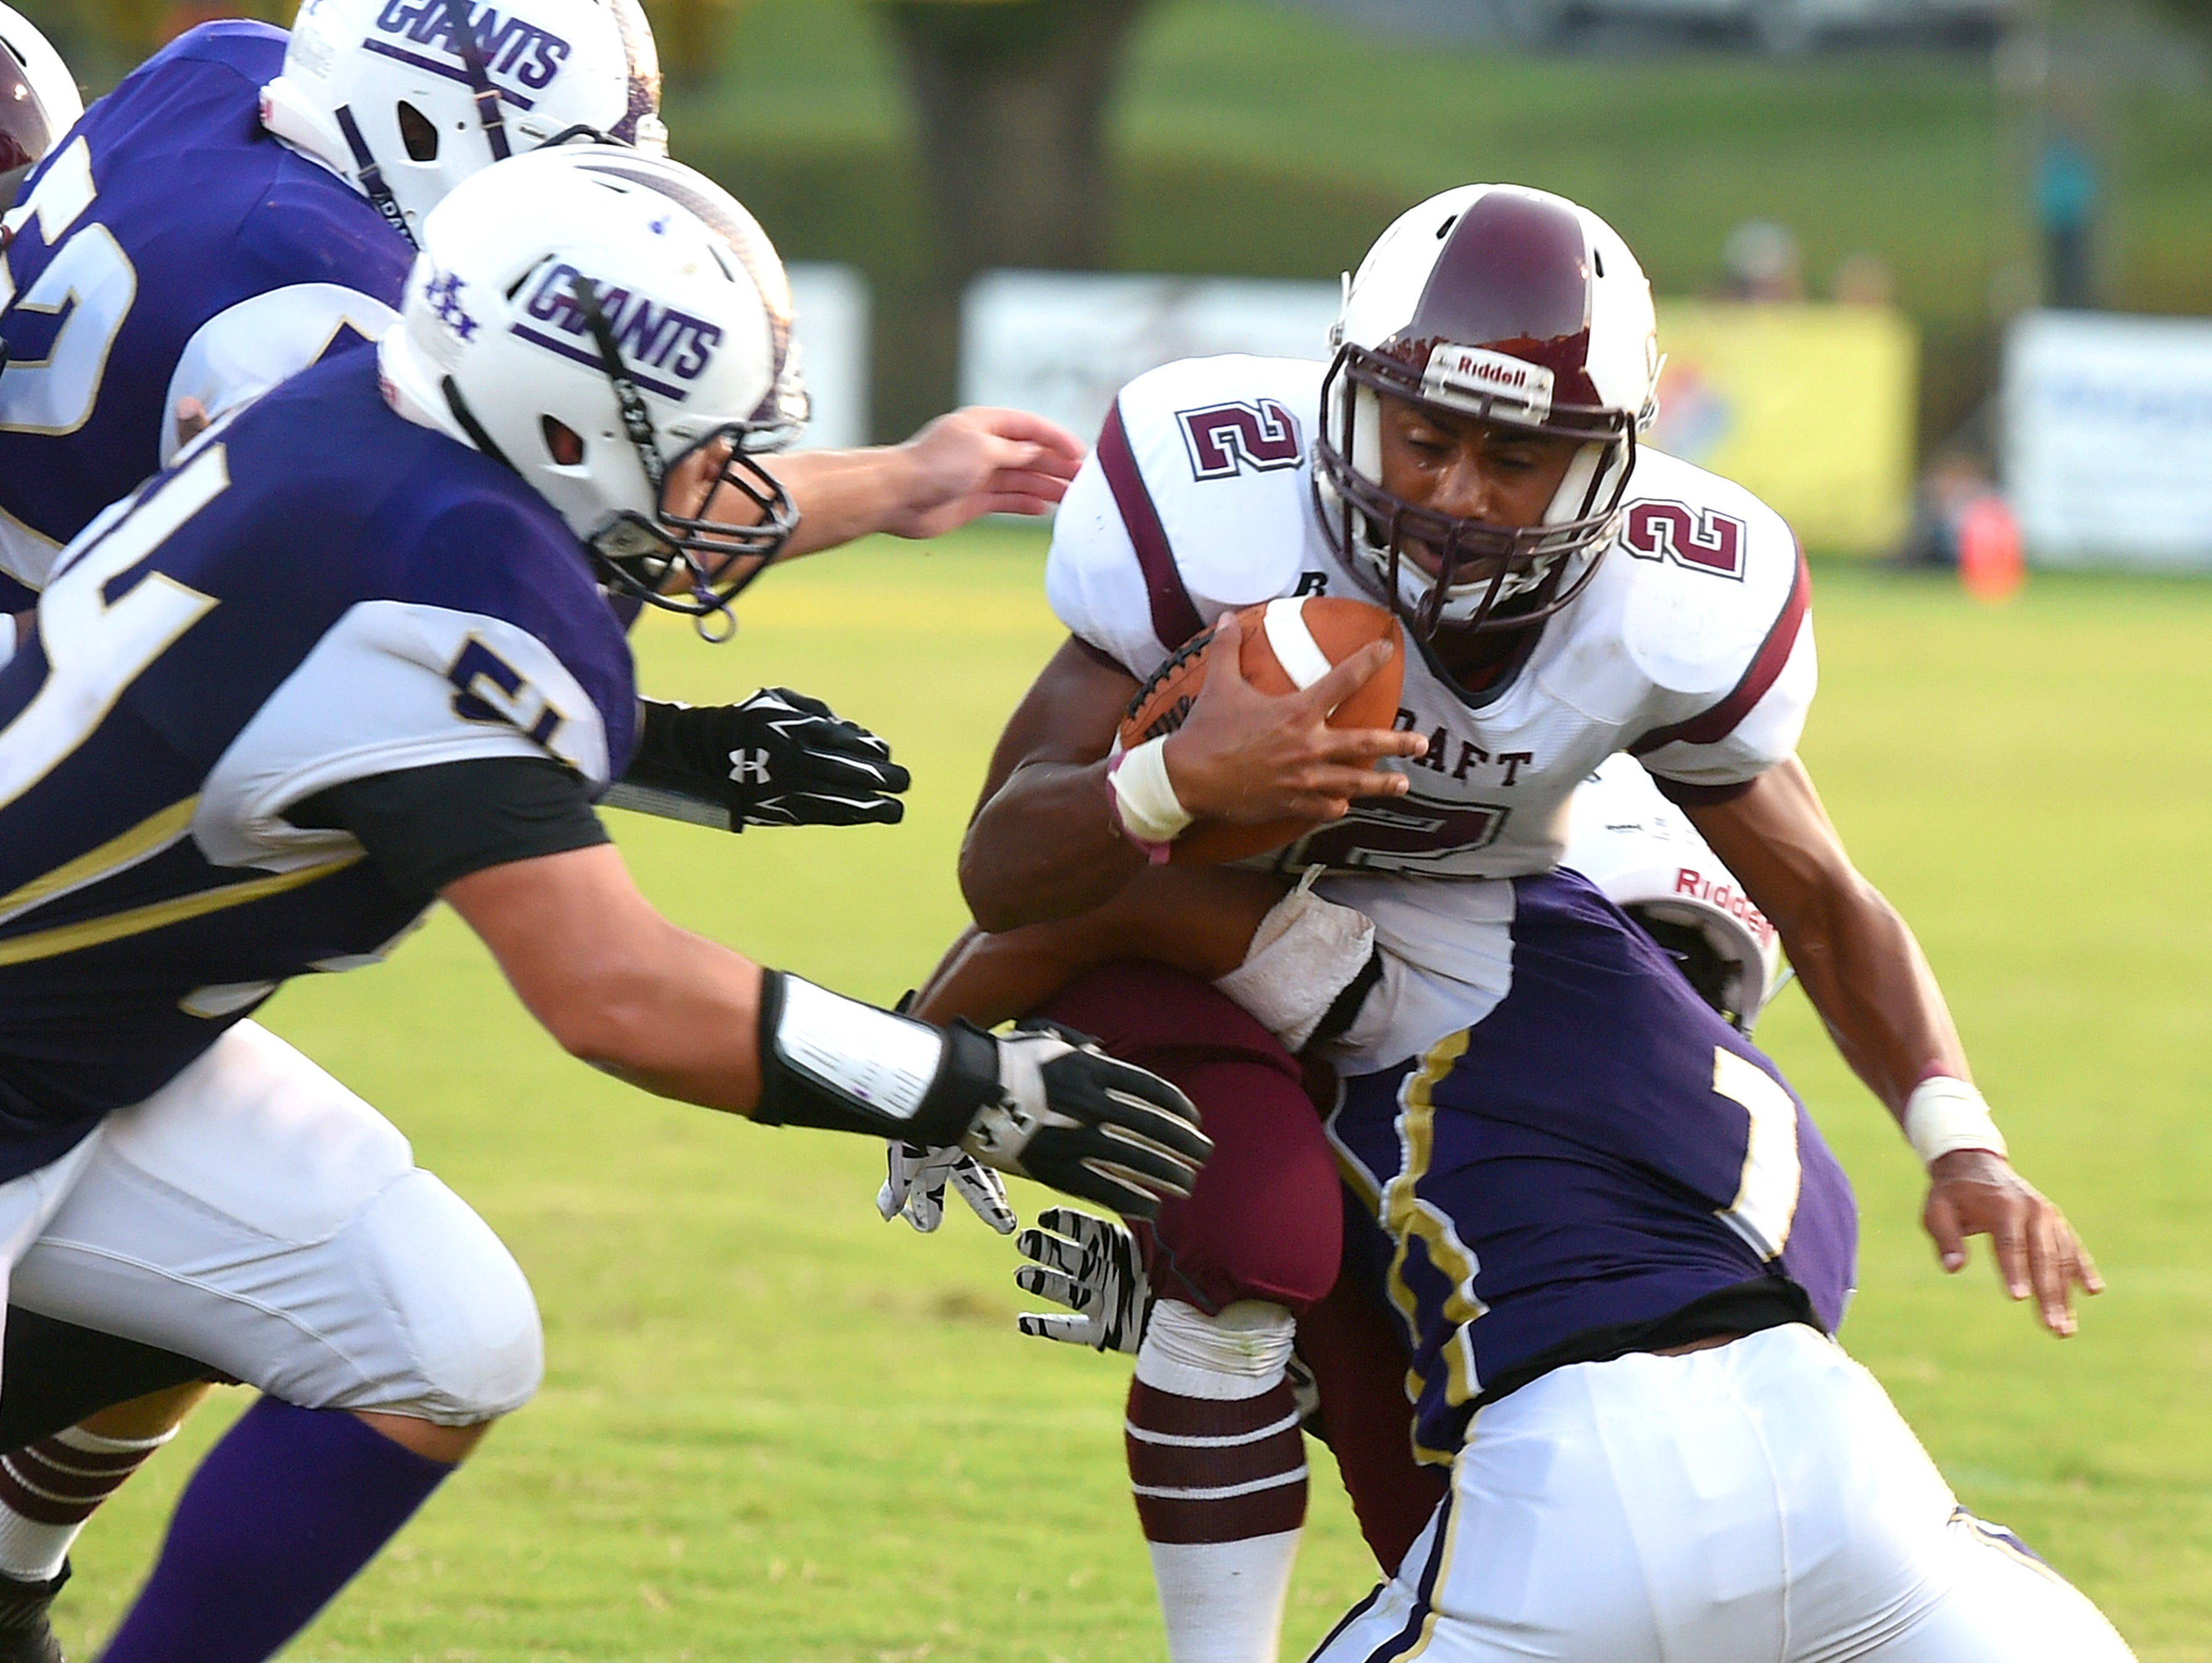 Stuarts Draft's Marston Jones is wrapped up by Waynesboro's Marendon Armon Jones as a pack of Waynesboro defenders close in during a football game played in Waynesboro on Friday, Sept. 11, 2015.